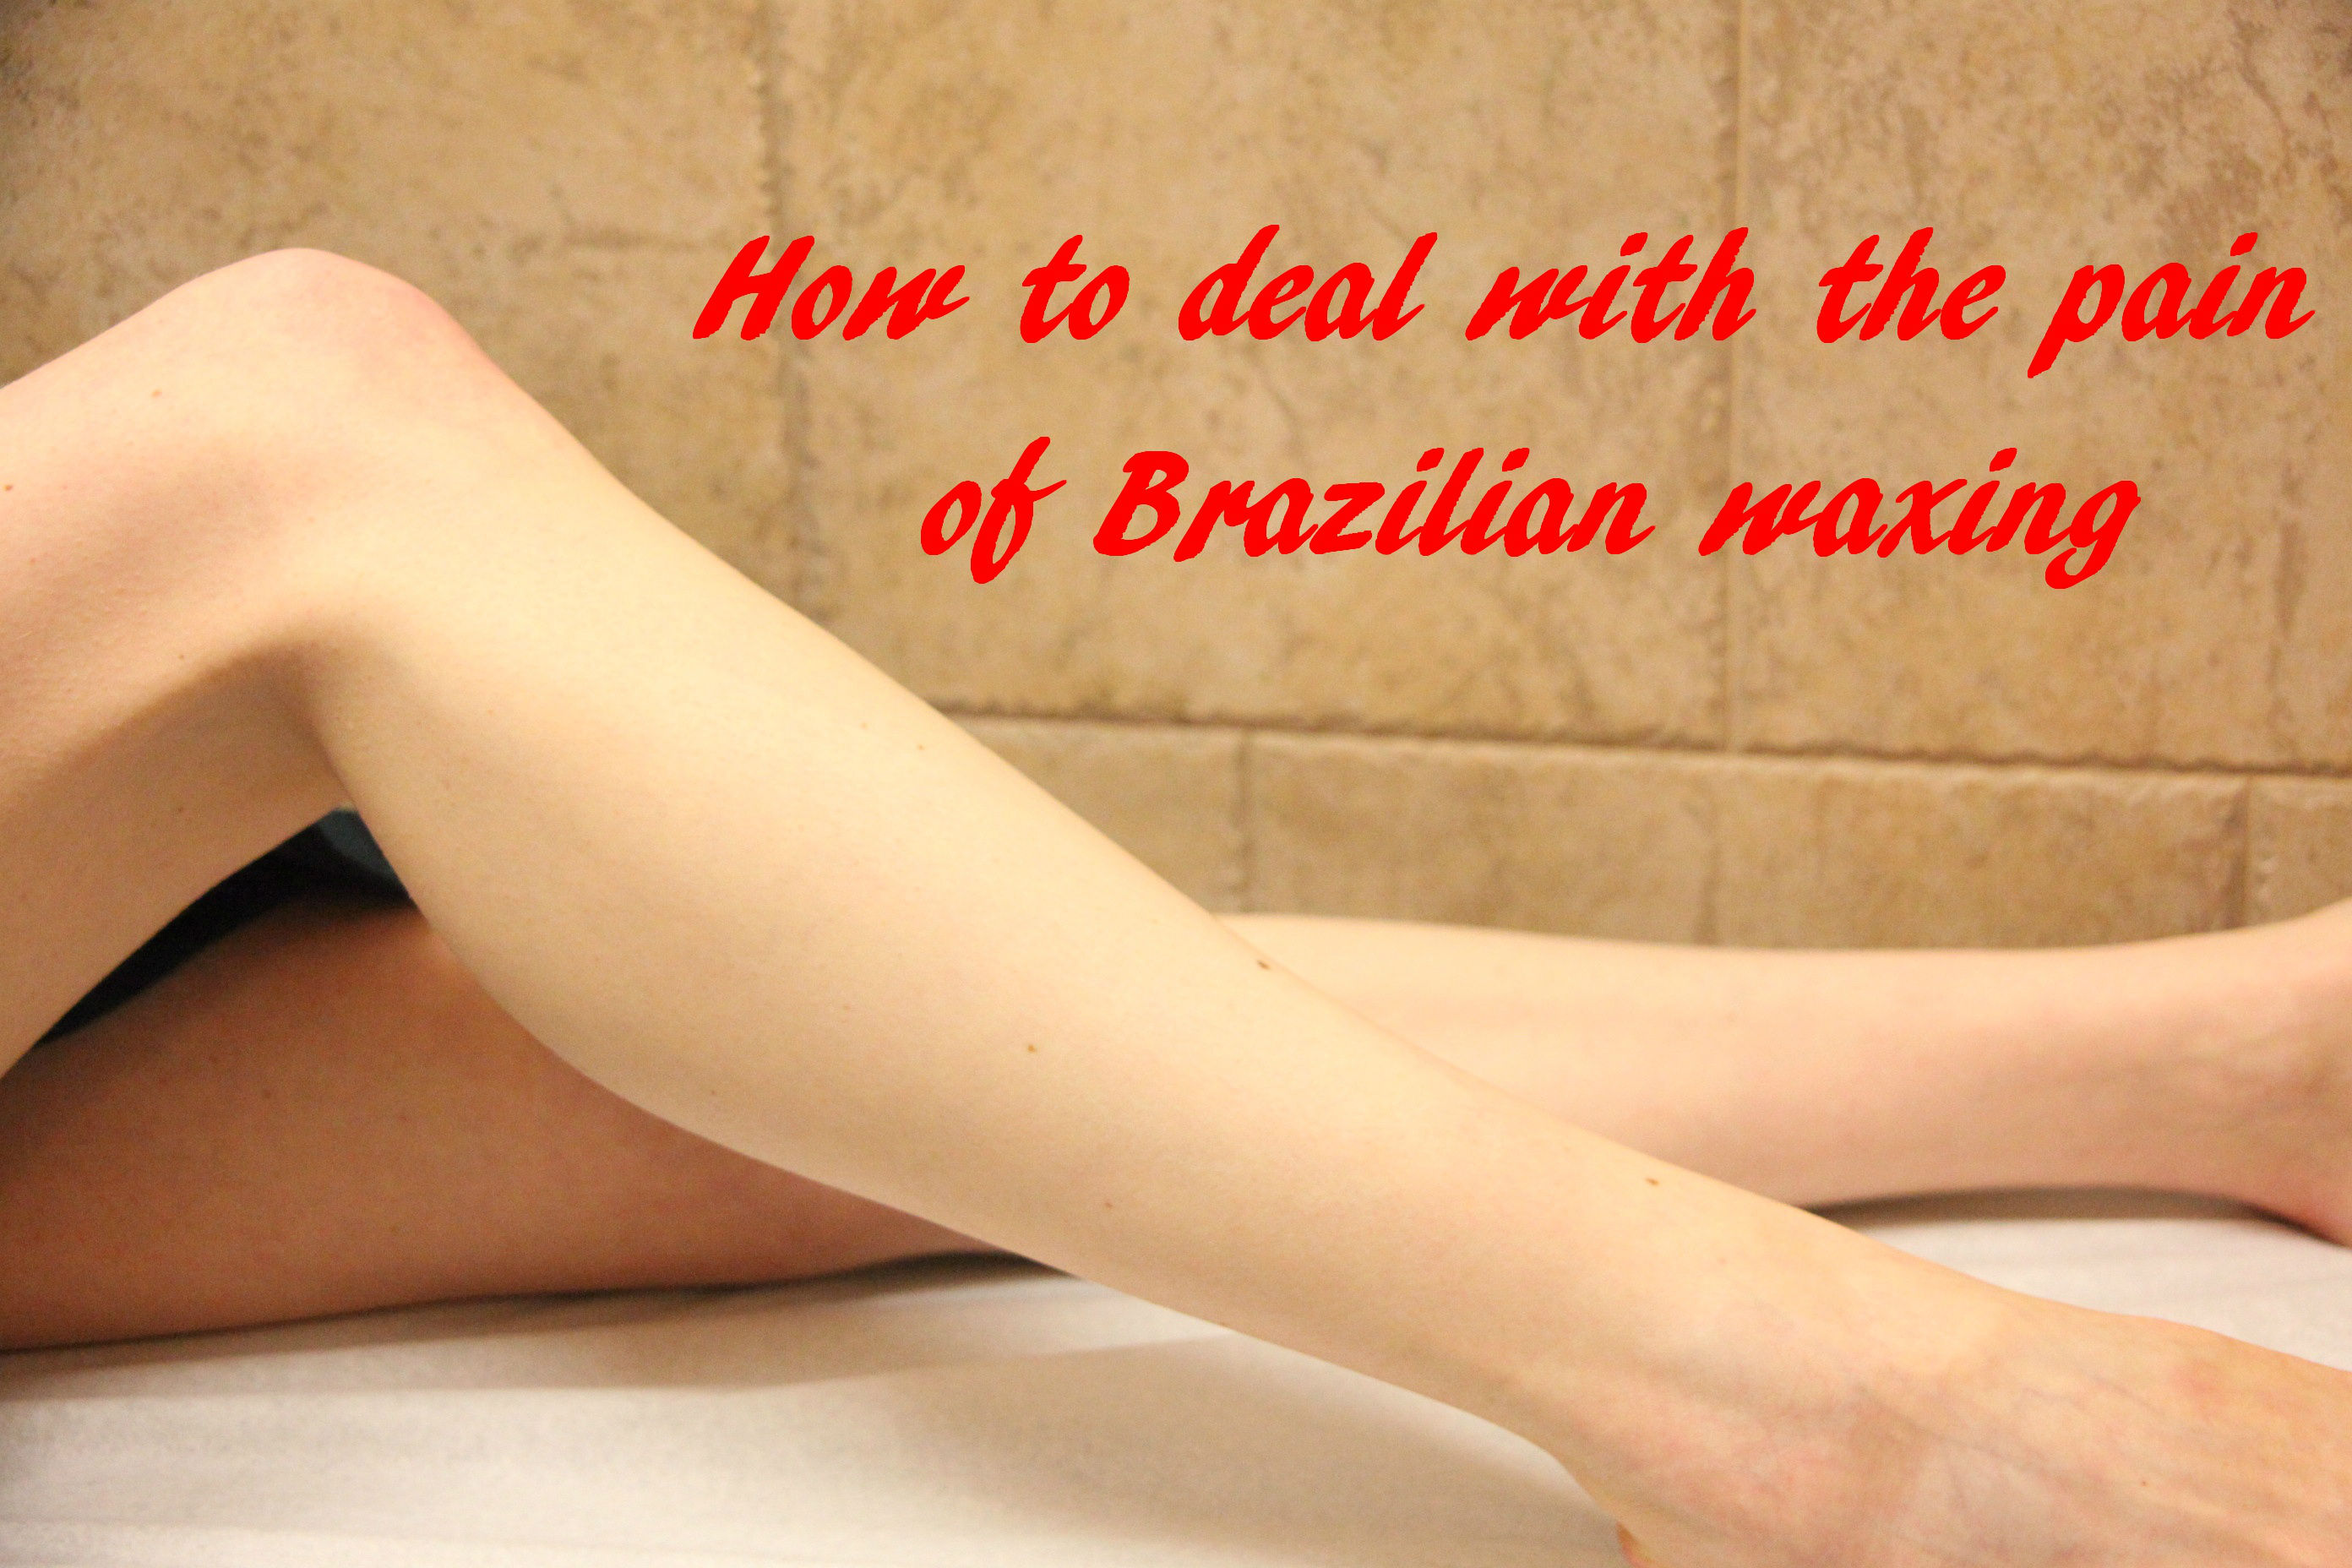 How to deal with the pain of brazilian waxing new york waxing hair waxing hair removal painbrazilianwaxnyc solutioingenieria Images